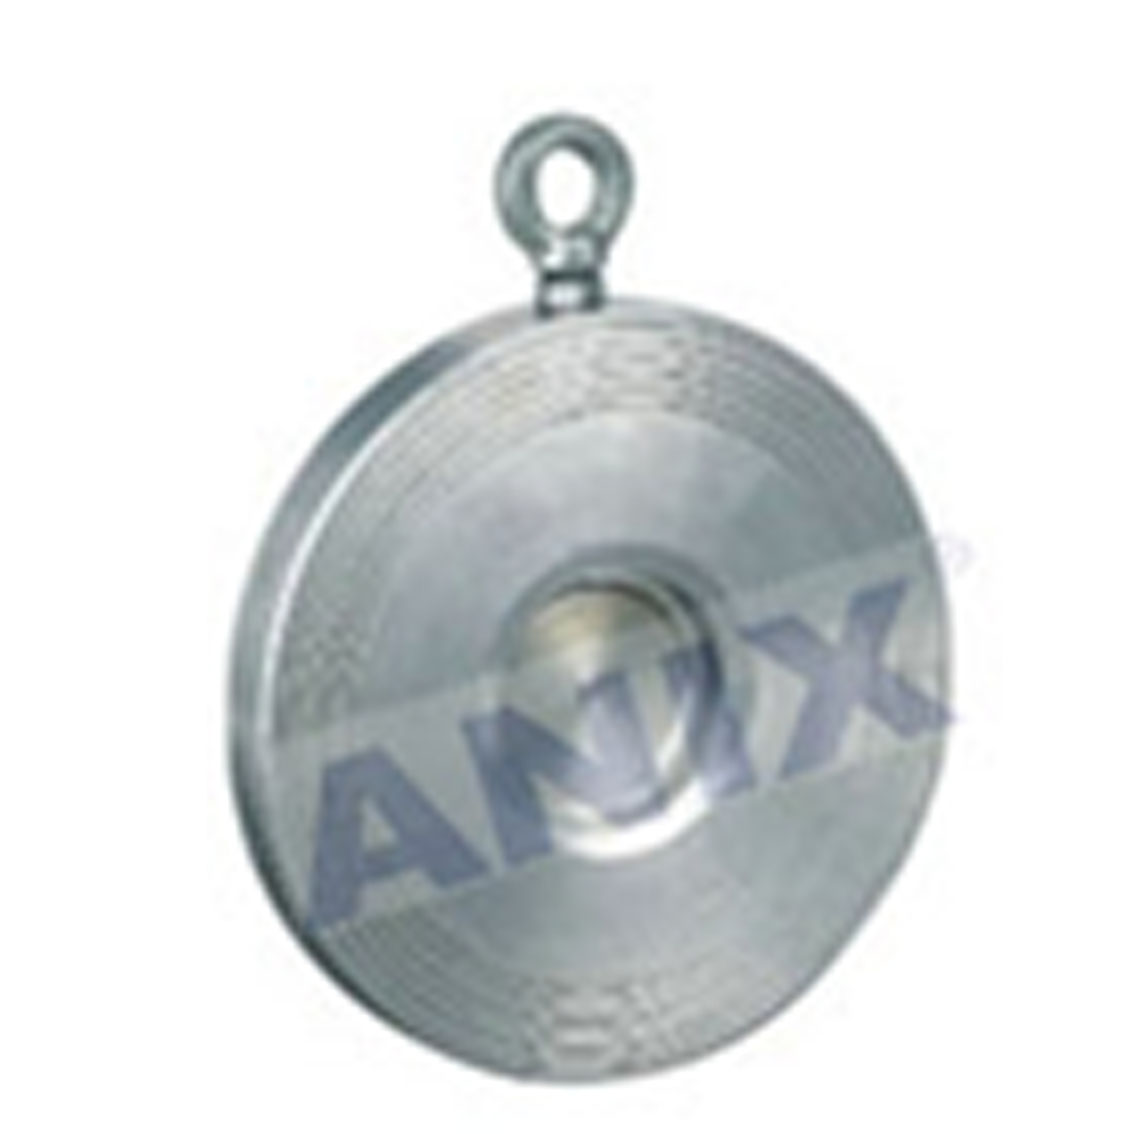 H74 SWING TYPE SINGLE DISC WAFER CHECK VALVE